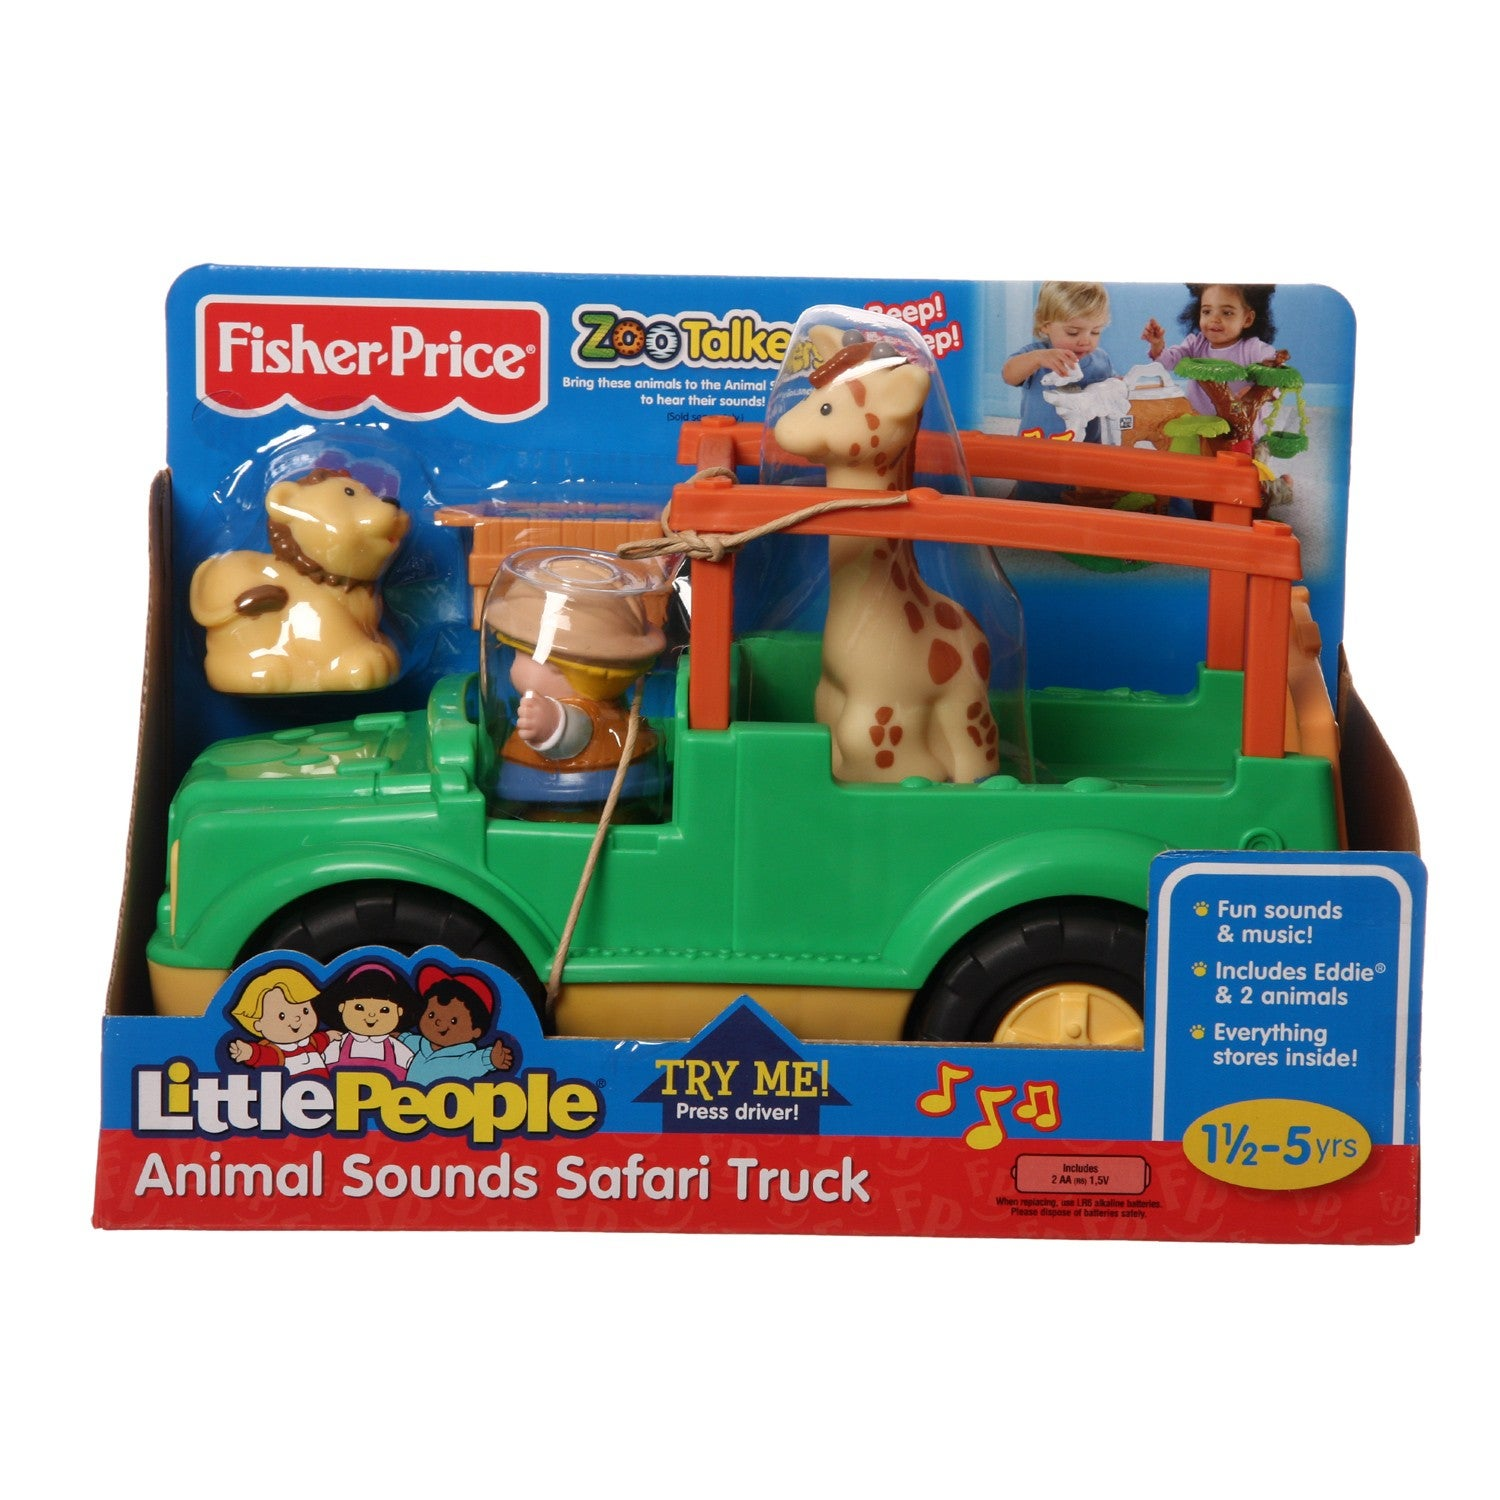 Shop Fisher Price Little People Zoo Talkers Animal Sounds Safari Truck Overstock 6311031